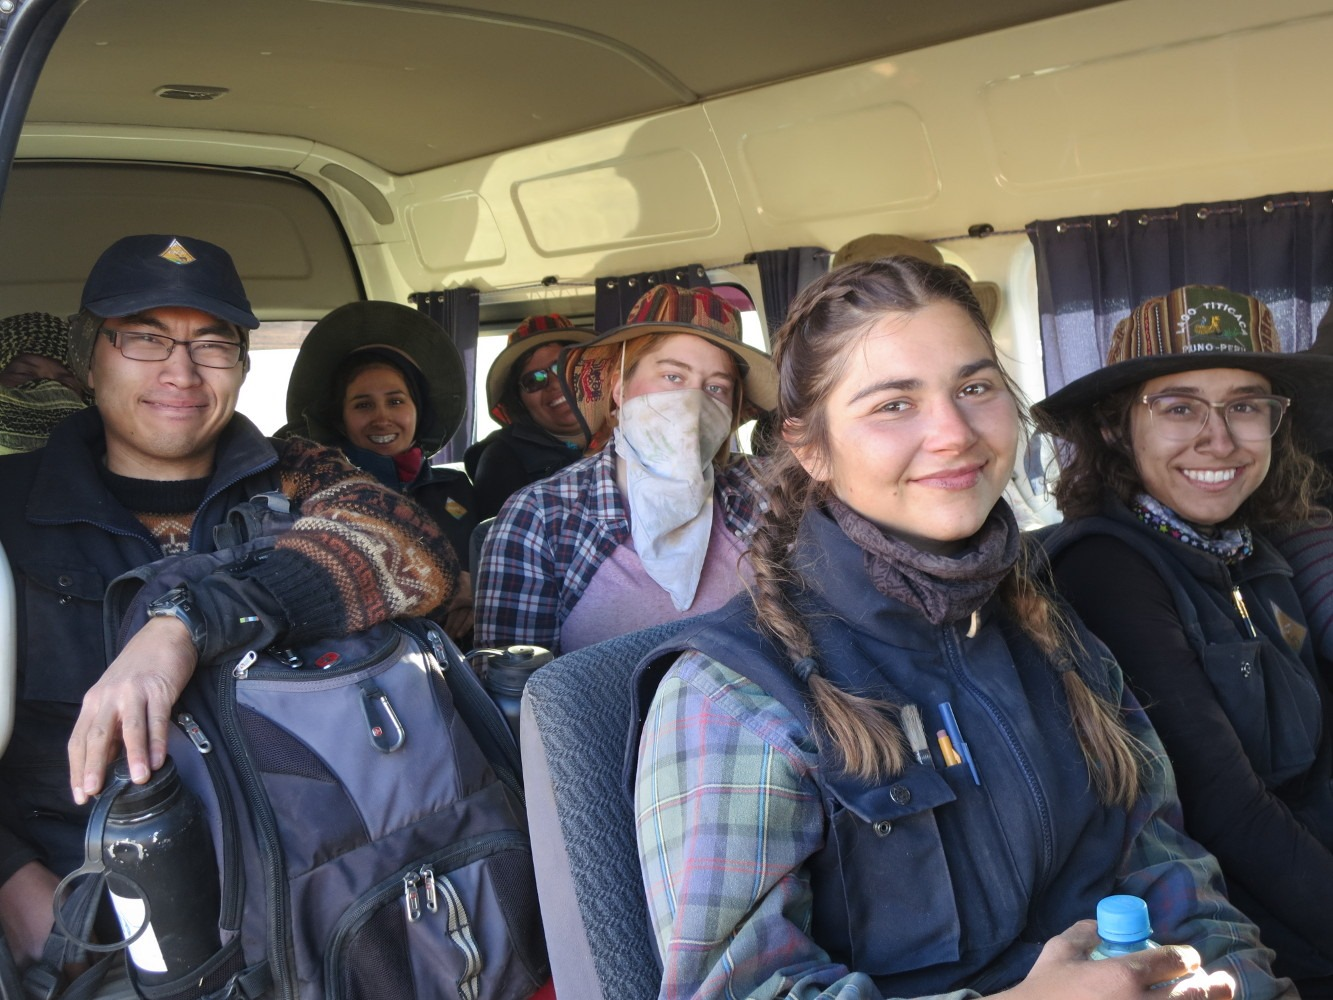 At the end of each day, we pile into the van an head to field camp in the town of Totorani.